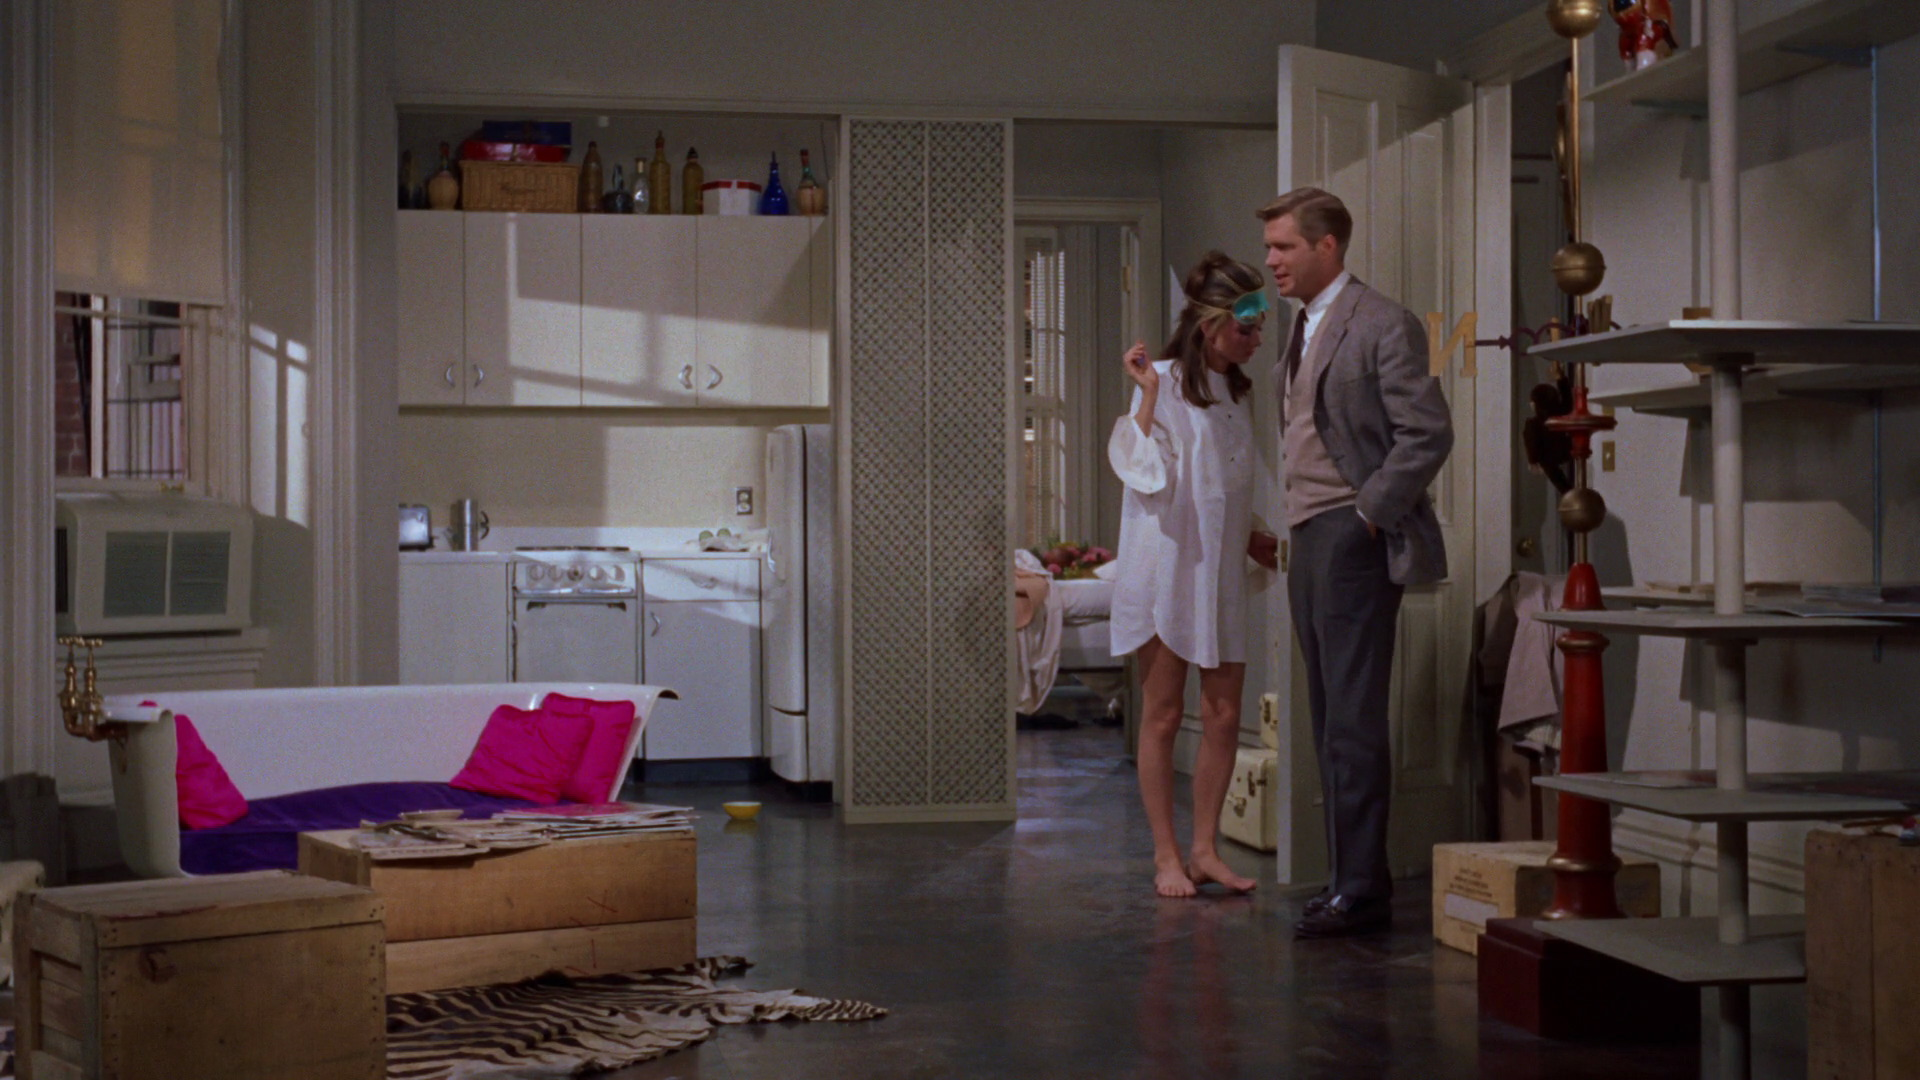 Breakfast at Tiffany's still